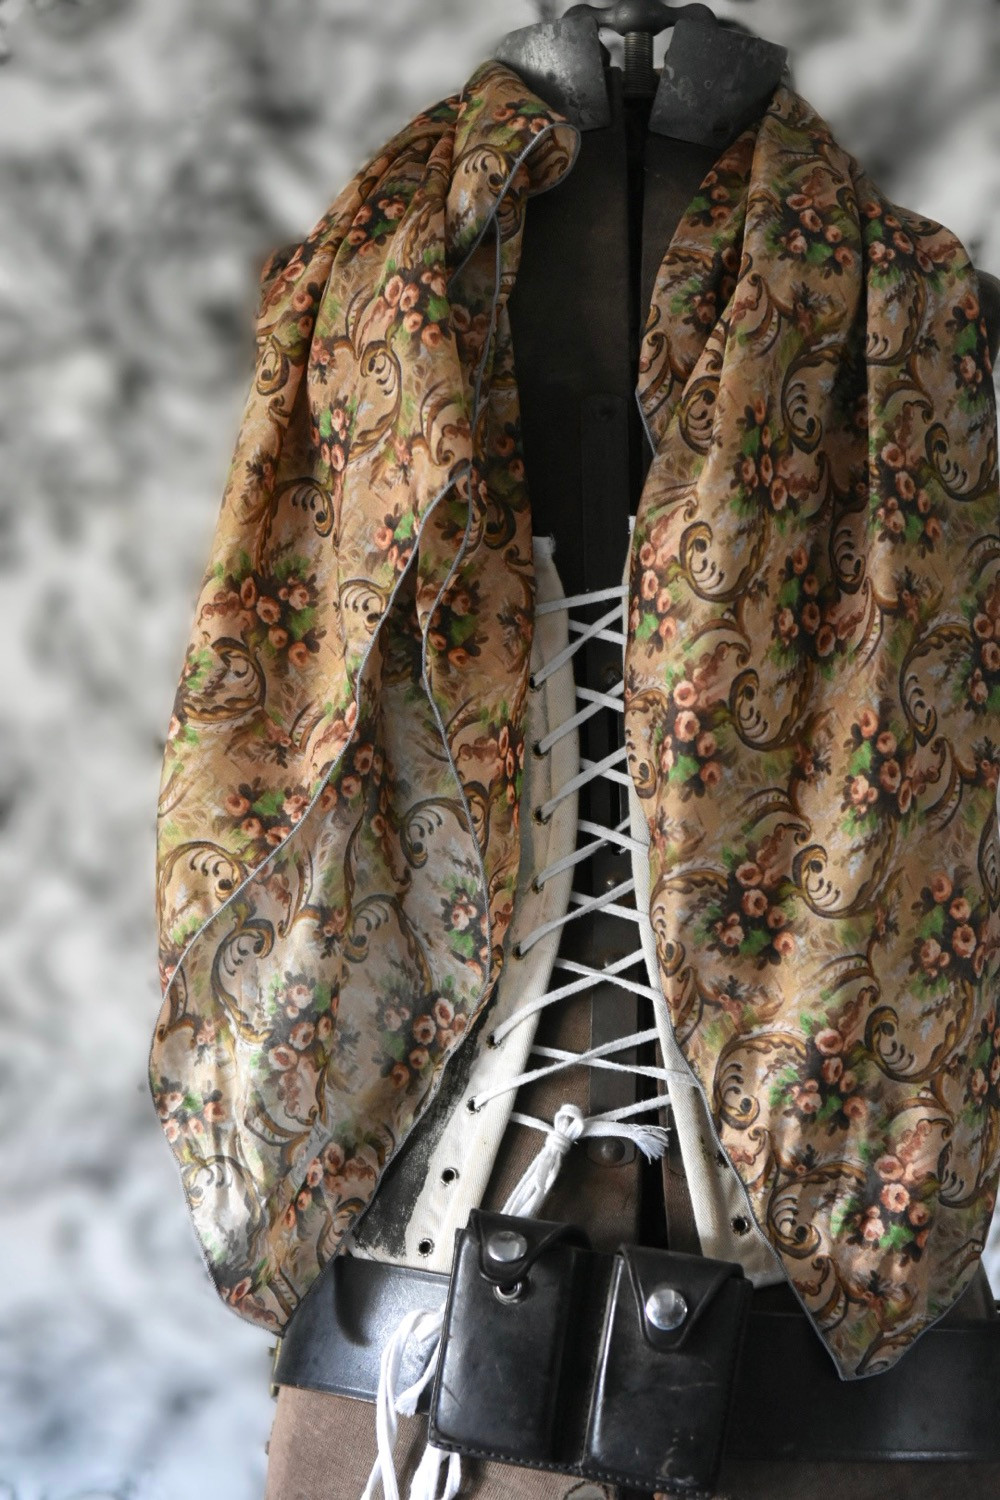 Silk Scarf with vintage french wallpaper inspired design by artist Jennifer Lanne for Decorum